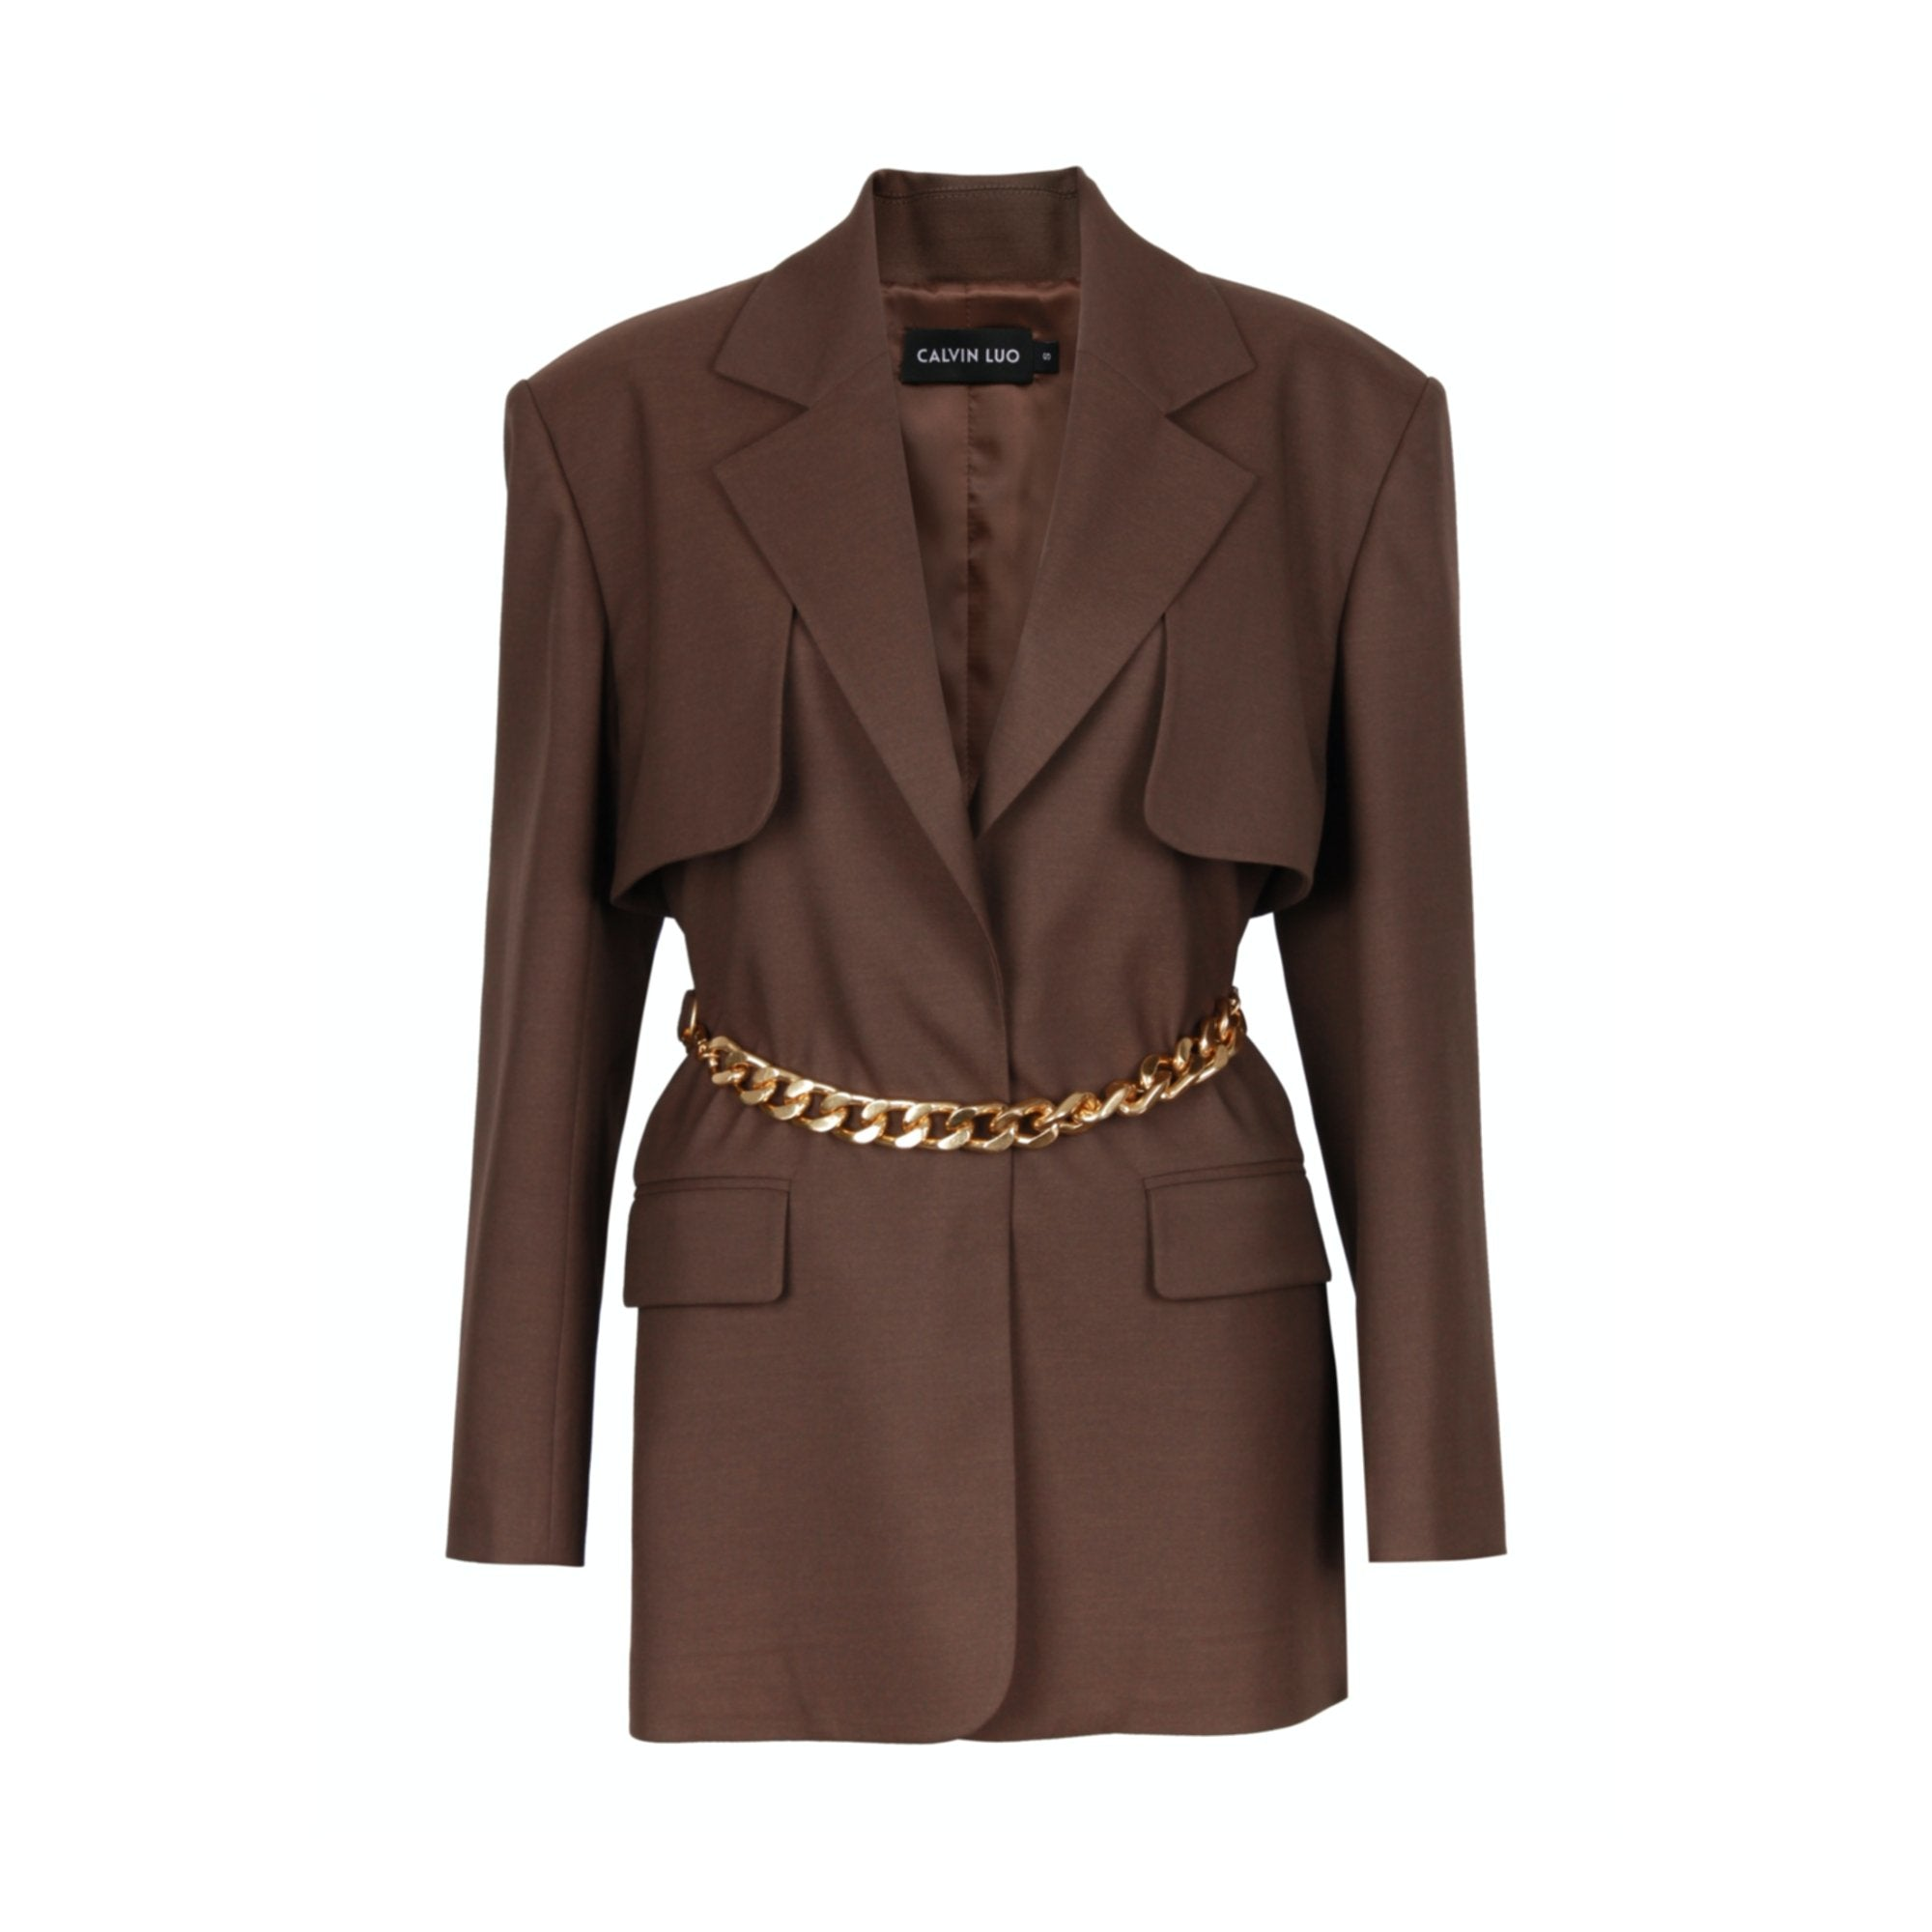 CALVIN LUO Brick Waist Chain Blazer Jacket | MADA IN CHINA